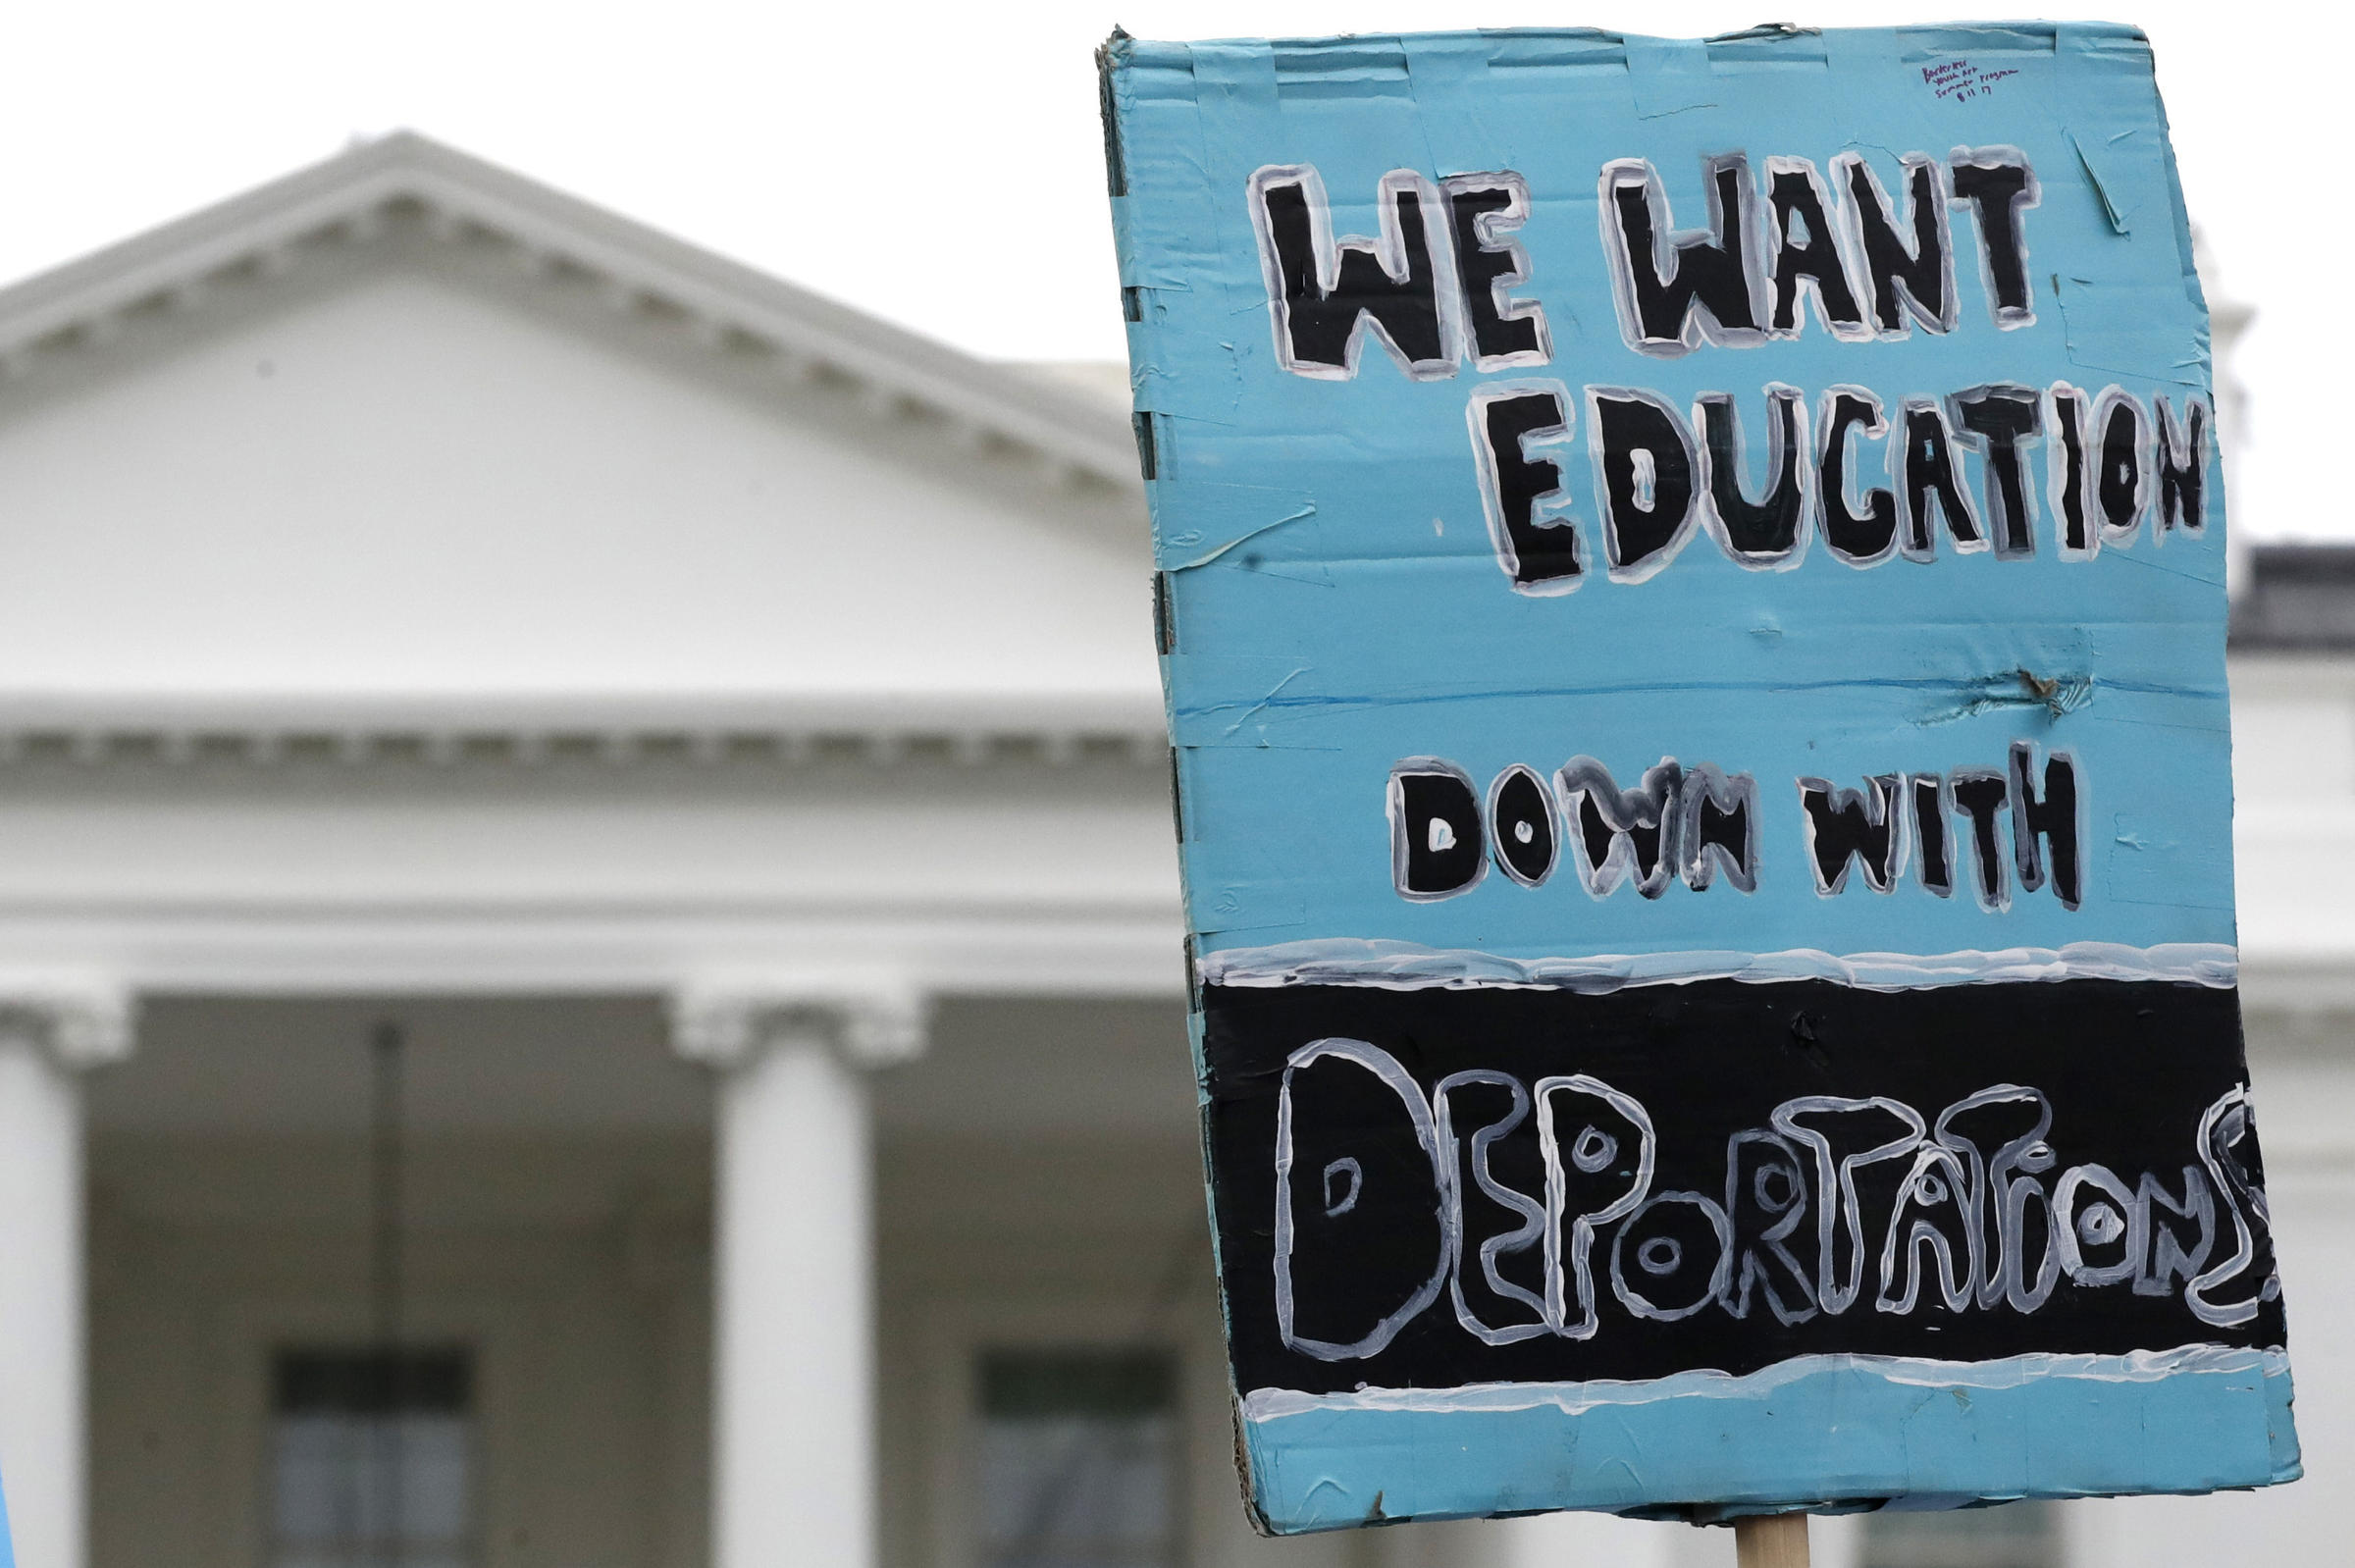 A sign is held up by the White House in support of the DREAMers and the Deferred Action for Childhood Arrivals program on Sept. 5 when Attorney General Jeff Sessions announced the Trump administration will